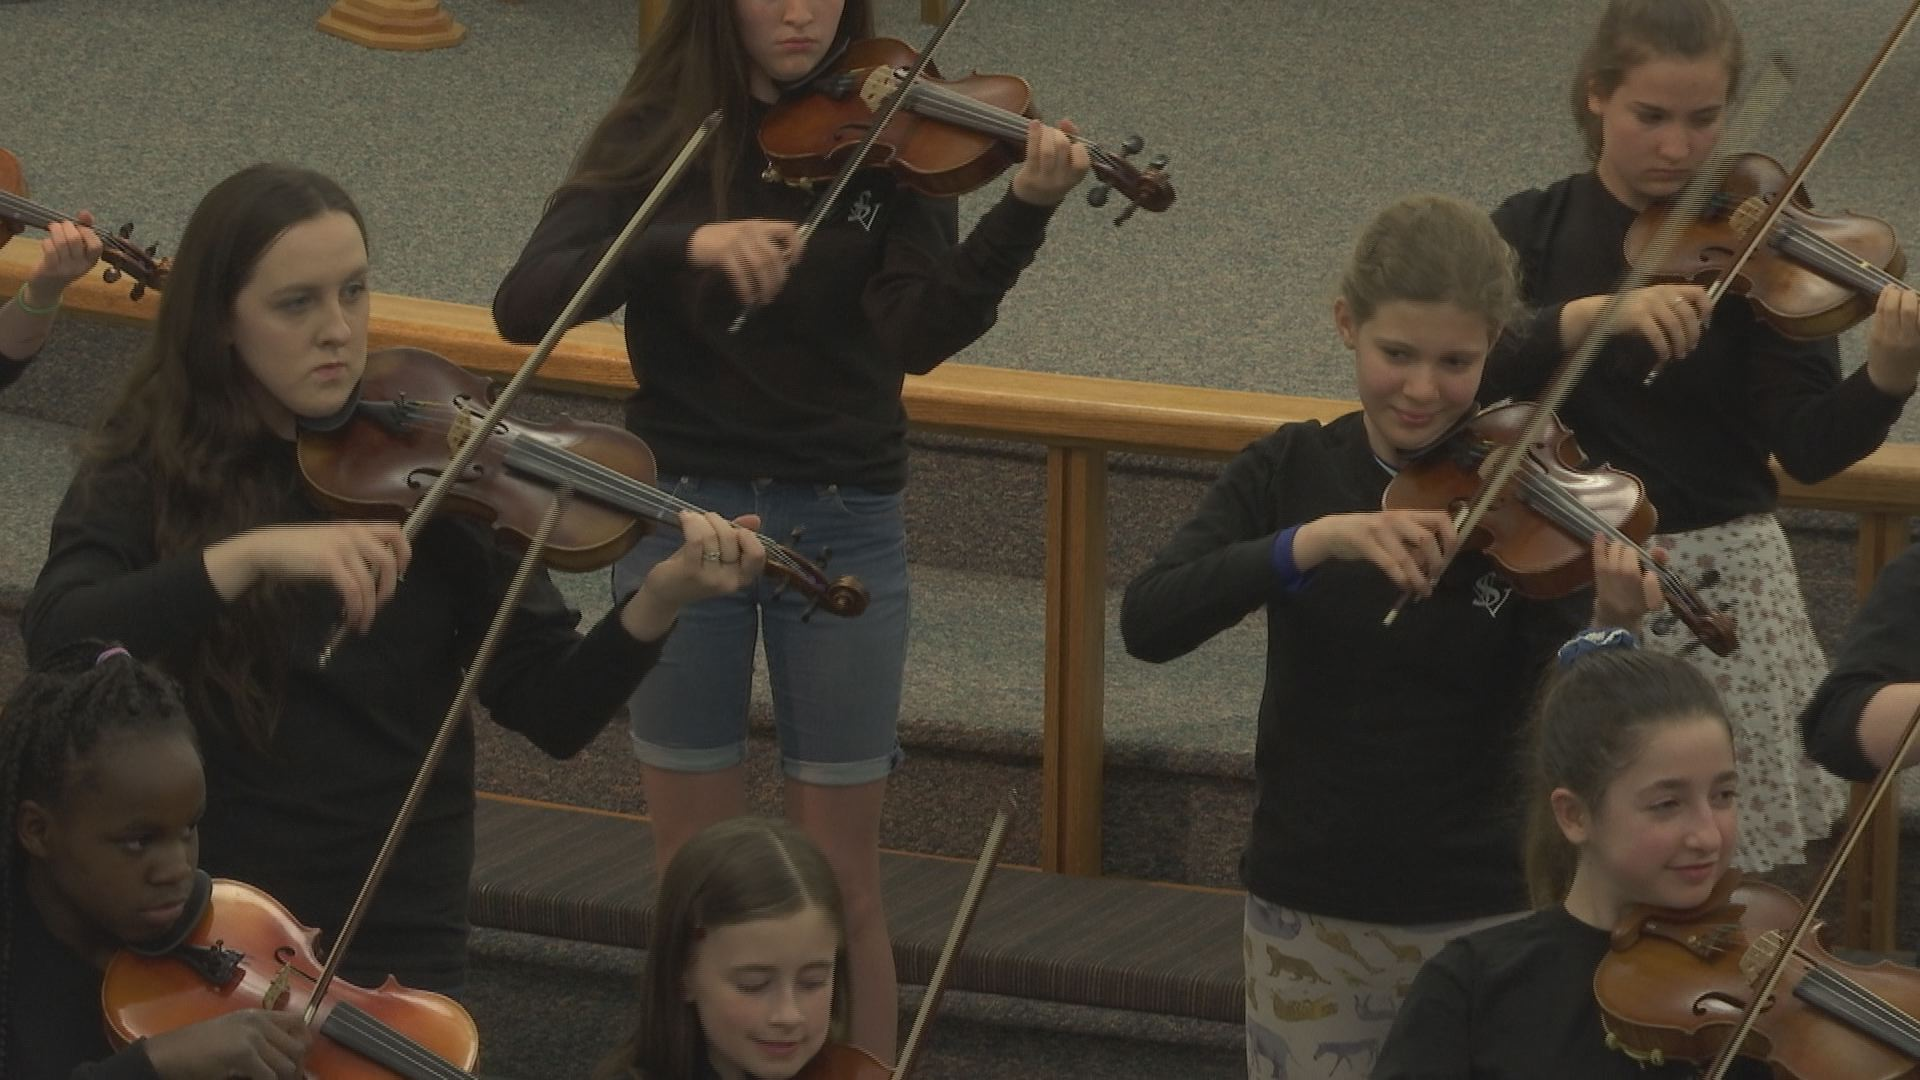 Siskiyou Violins Win Gold At Carnegie Hall Kobi Tv Nbc5 Koti Tv Nbc2